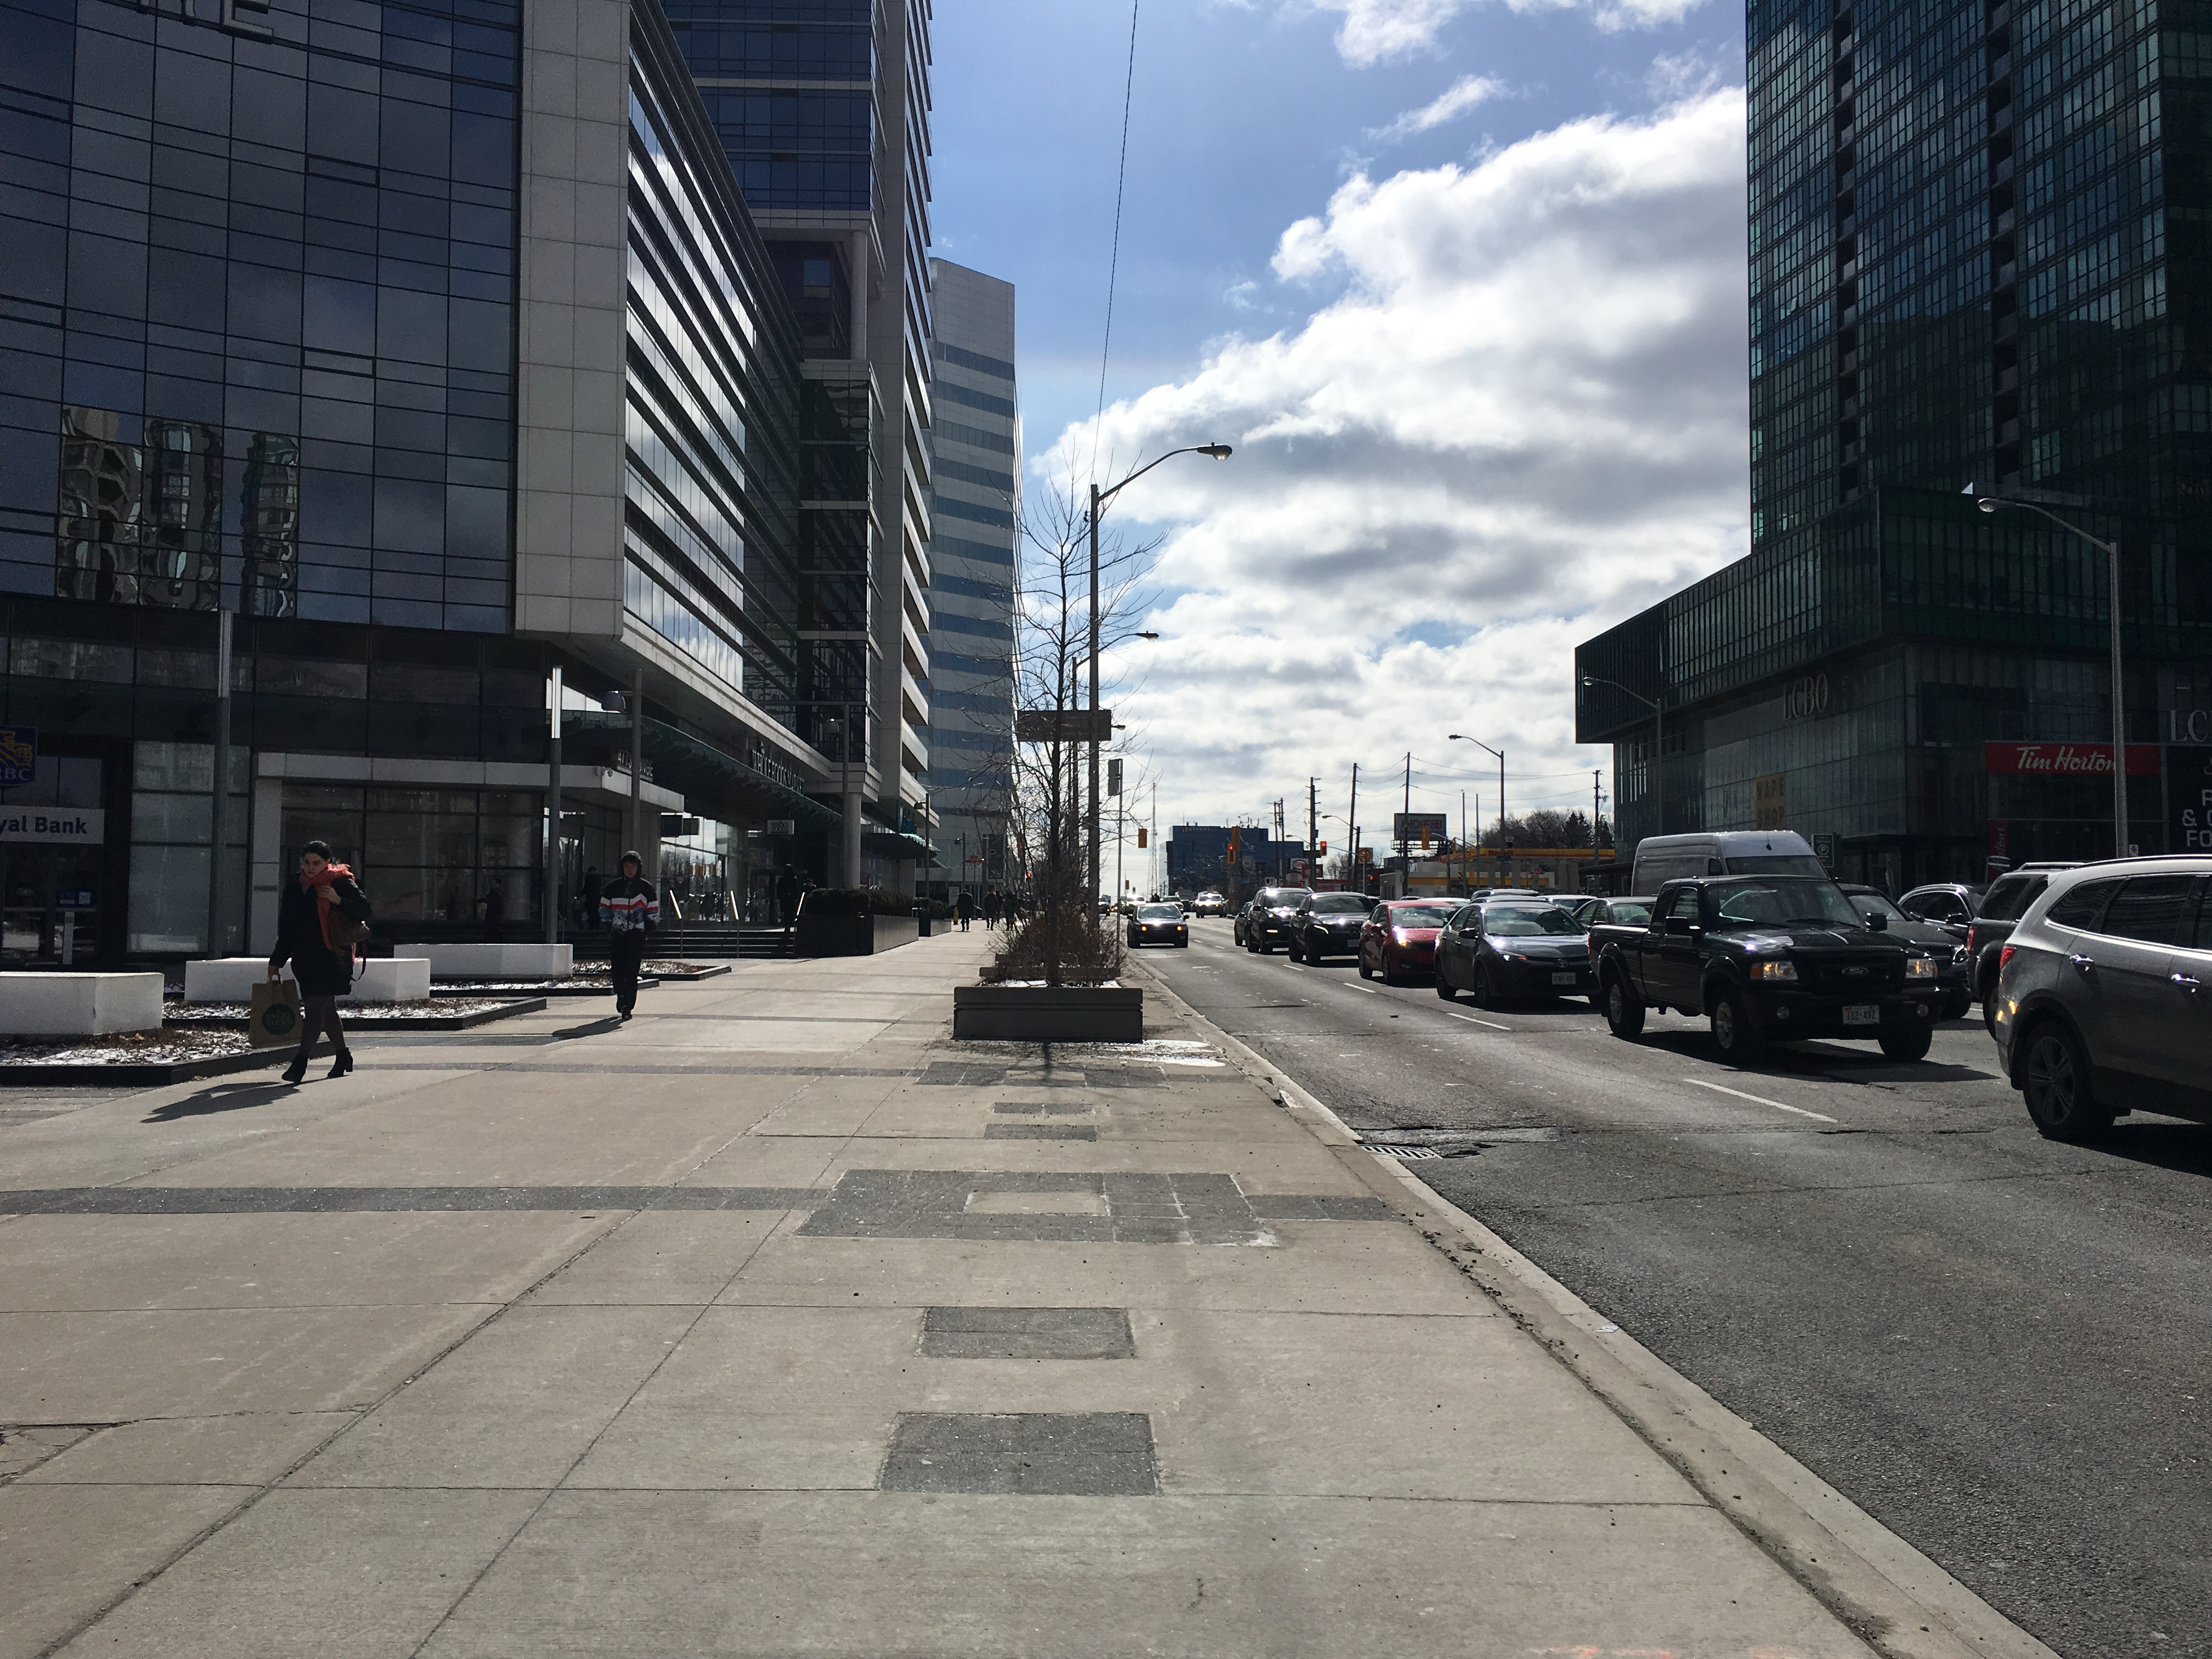 12:01 p.m., March 2, 2018. Traffic builds up on Yonge Street near Sheppard Avenue, next to wide sidewalks.